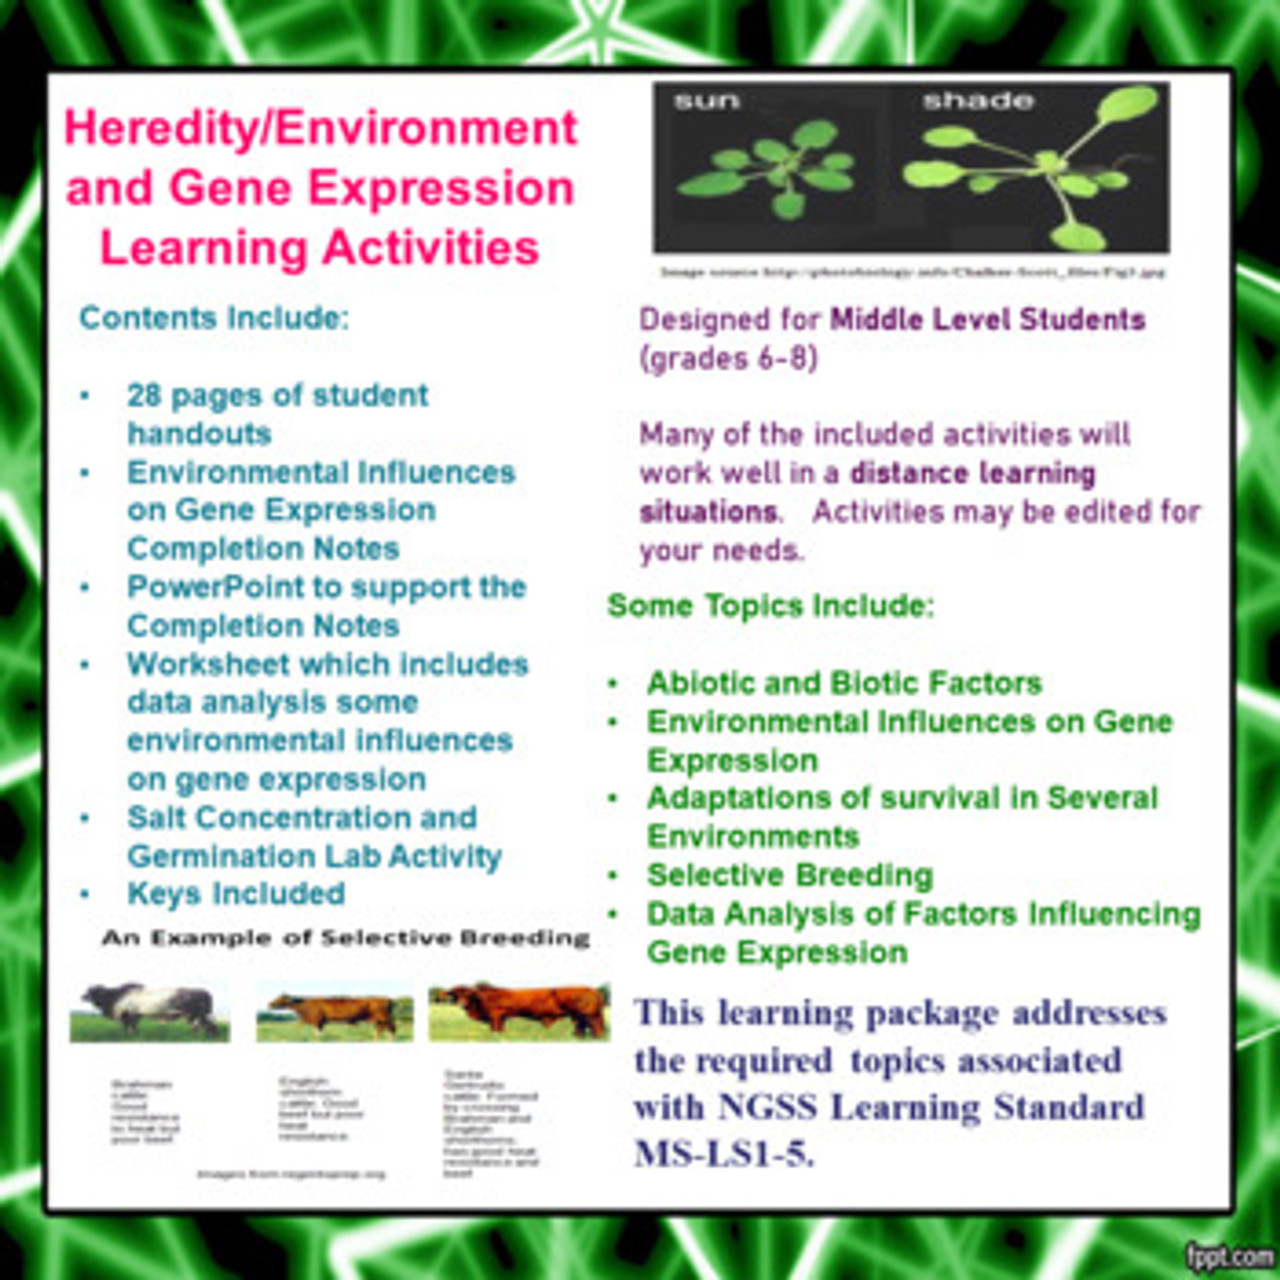 Environment/Heredity and Gene Expression for Middle School Science Learning Package